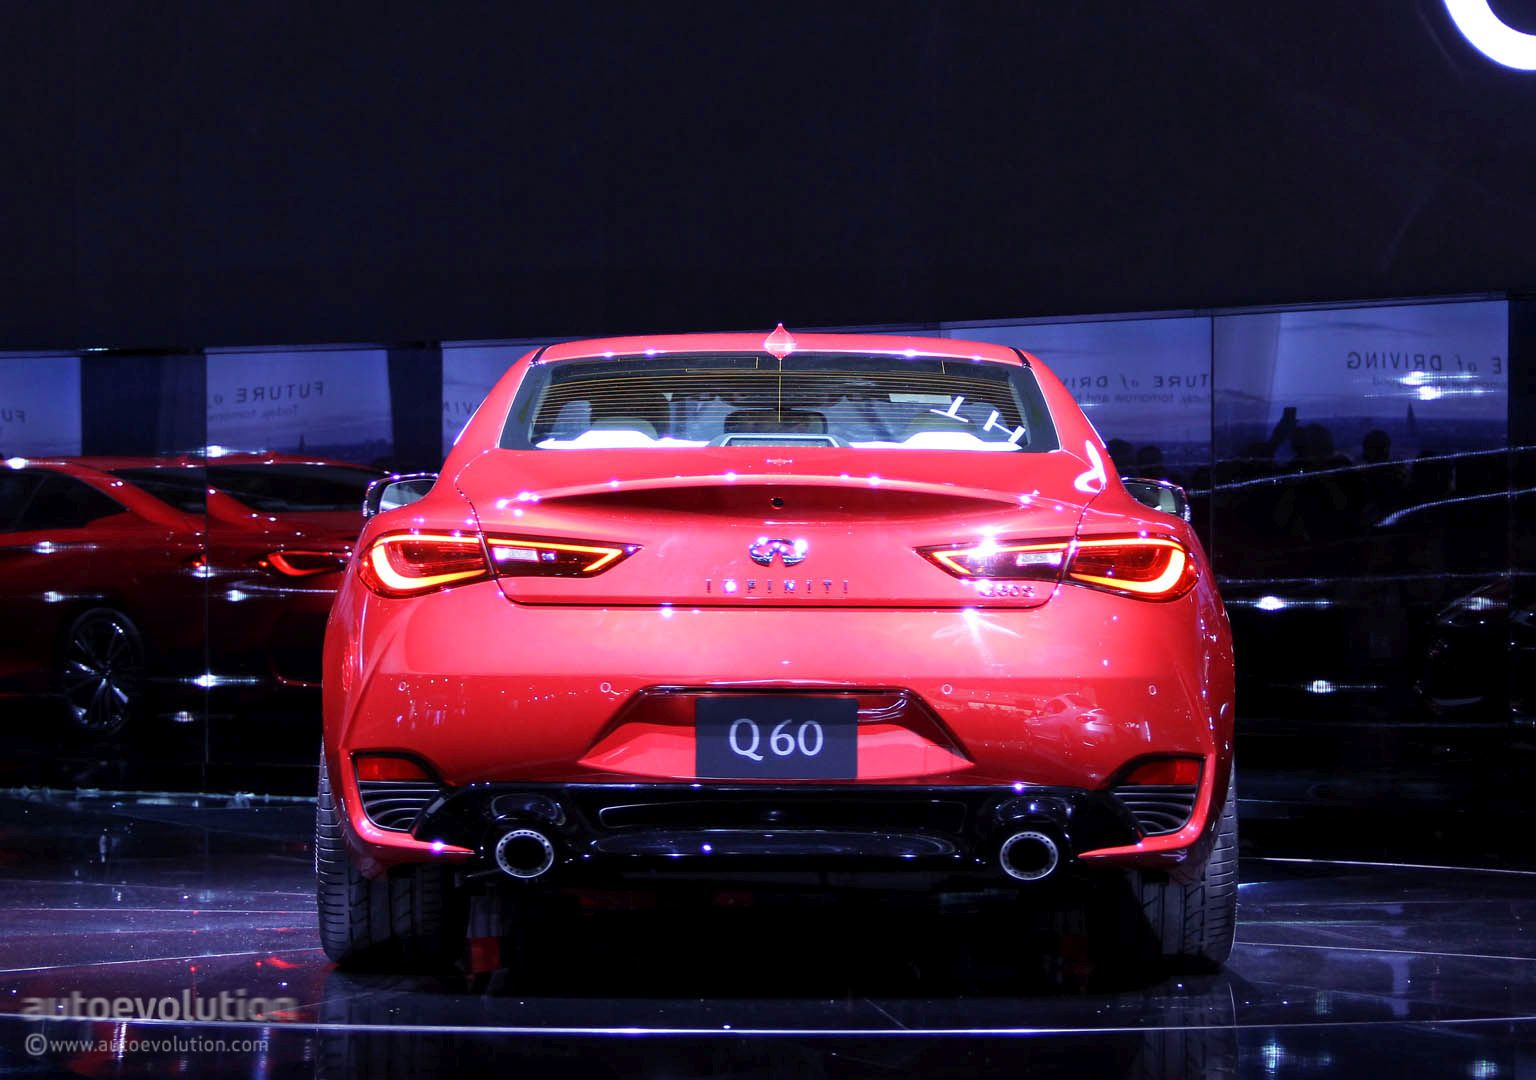 2017 Infiniti Q60 Red Sport 400 Now Available to Order ...